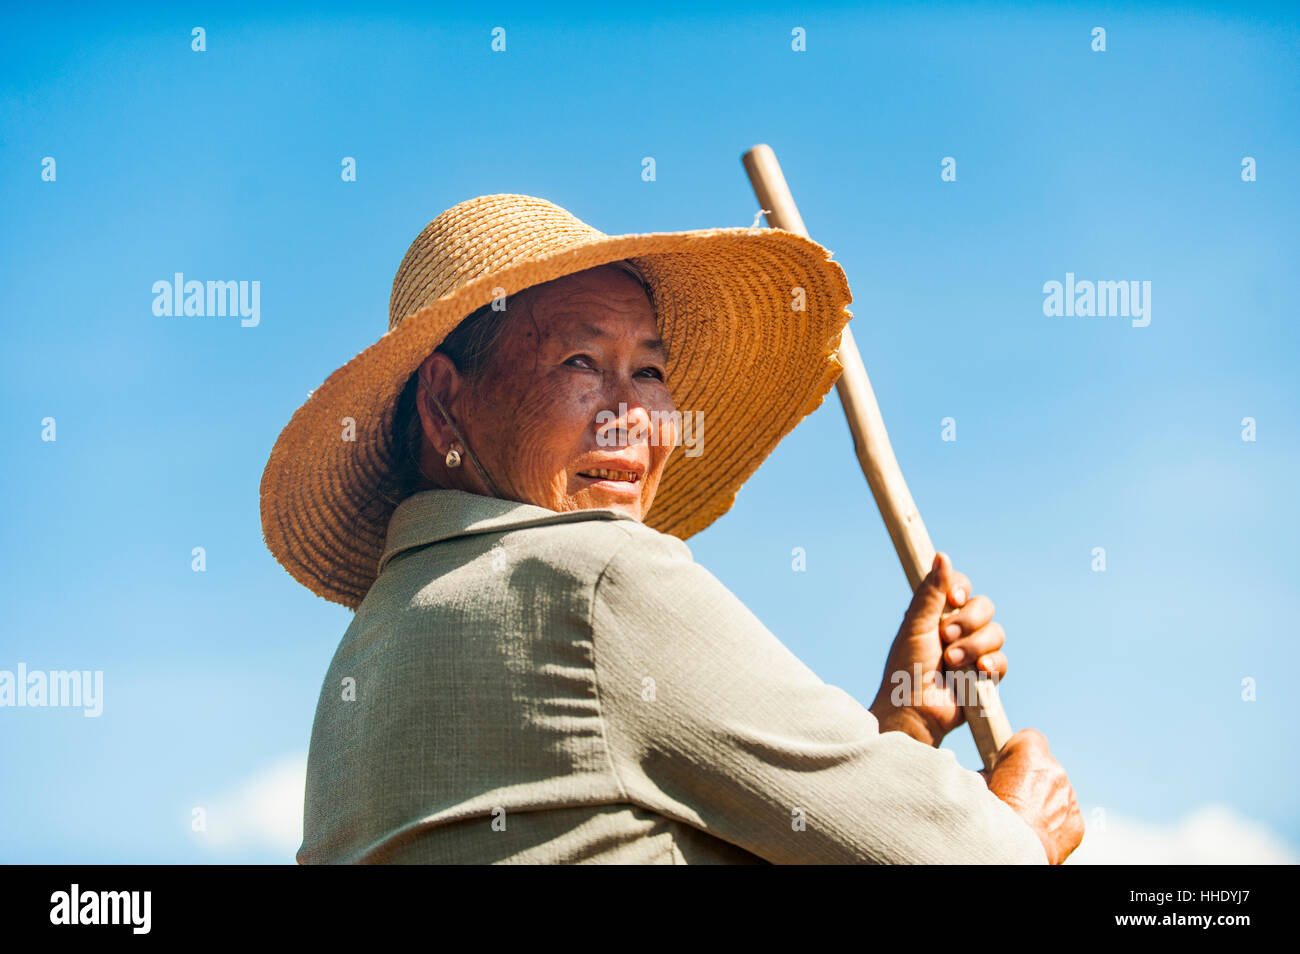 A farmer with a hand tool in Yunnan Province, China - Stock Image